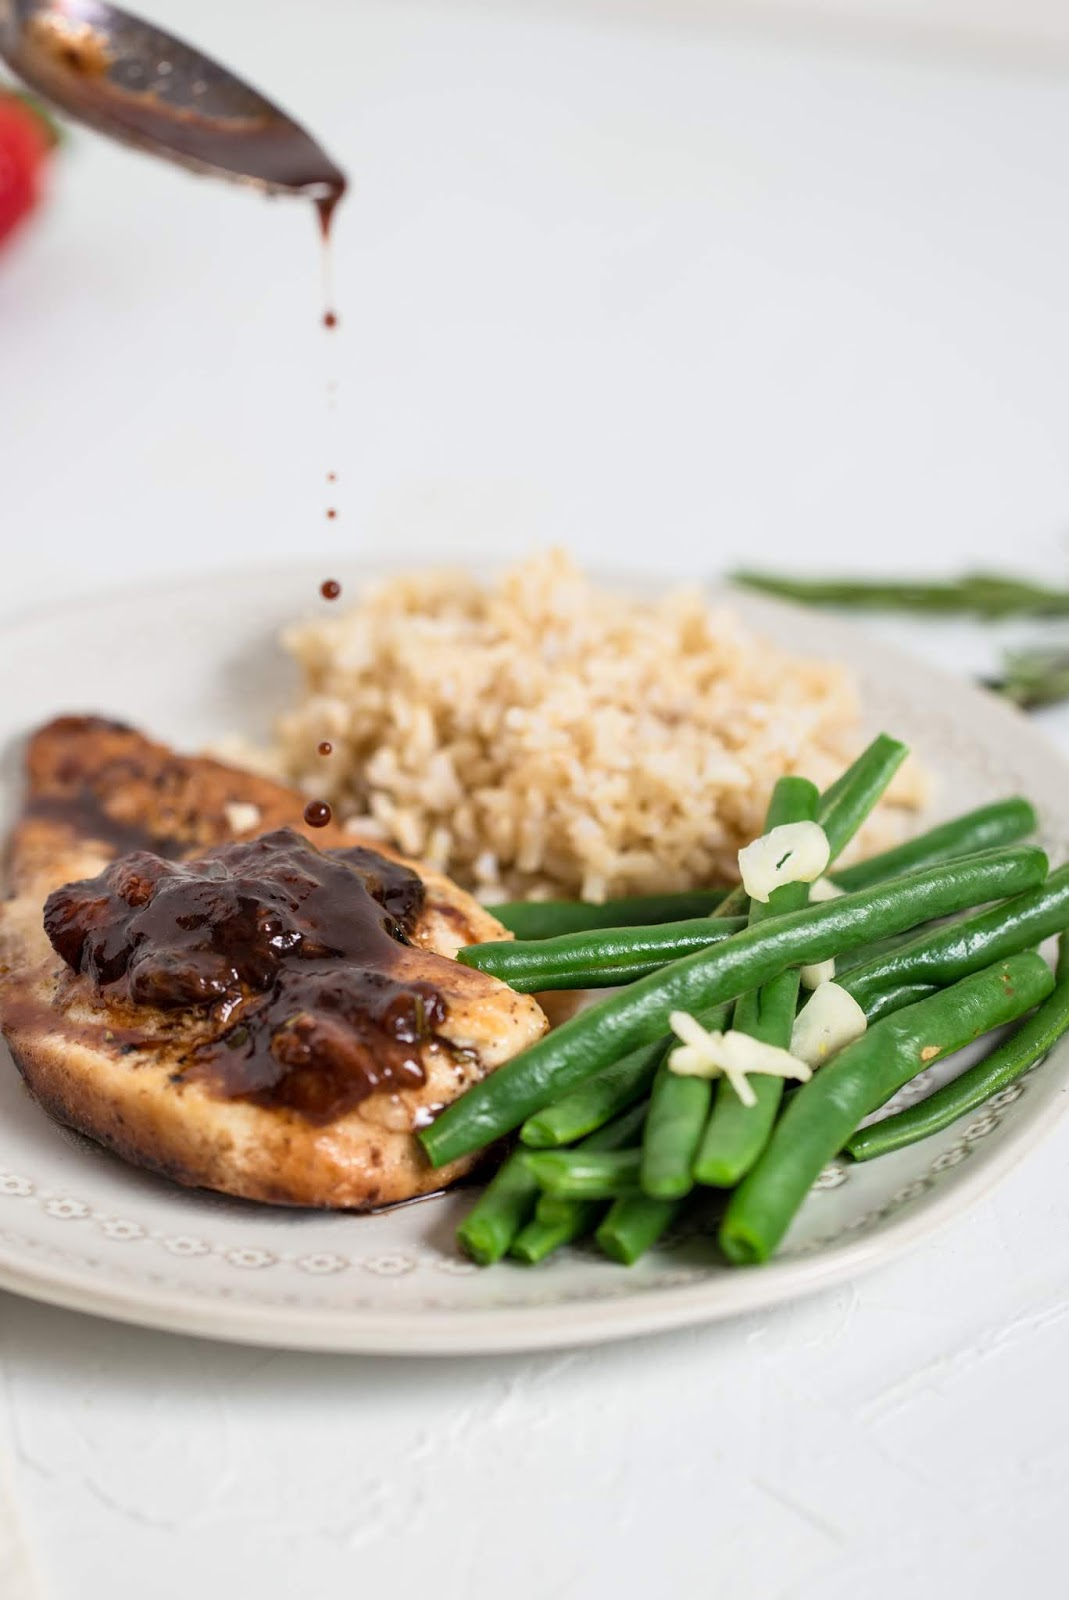 This Chicken with Strawberry-Balsamic Sauce is simple enough for a family meal, yet elegant enough to serve guests.